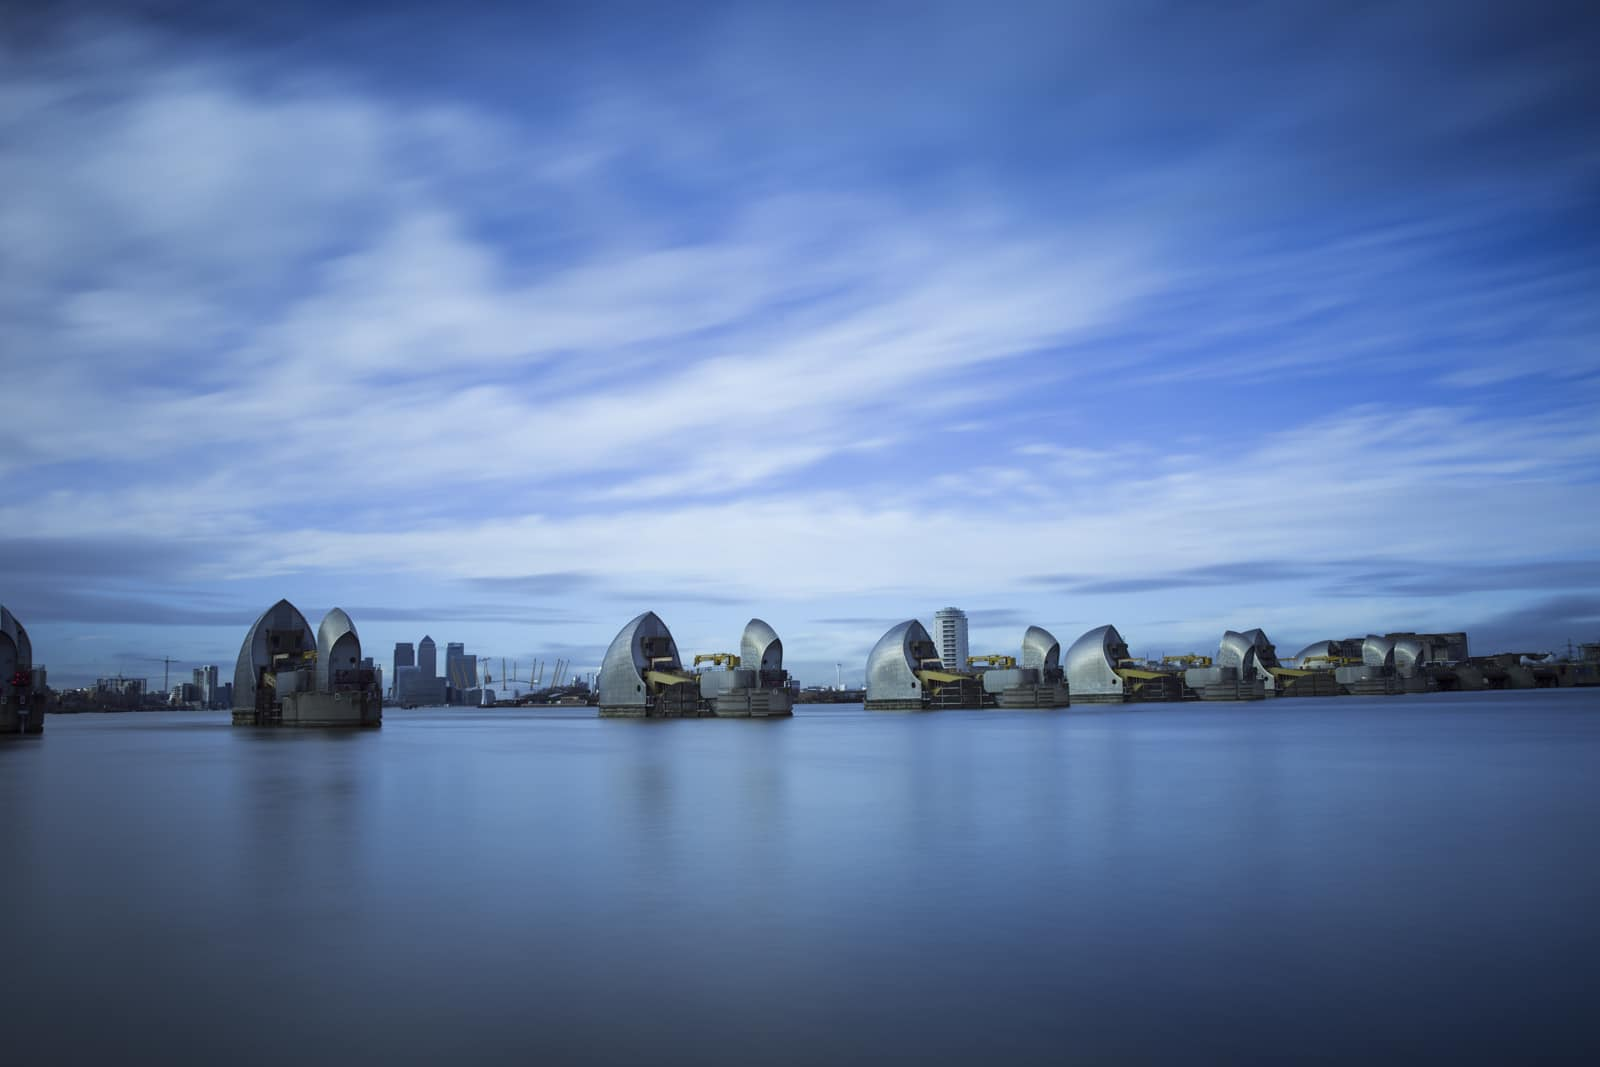 rich clark, thames barrier, abstract, rich clark images, landscape photography